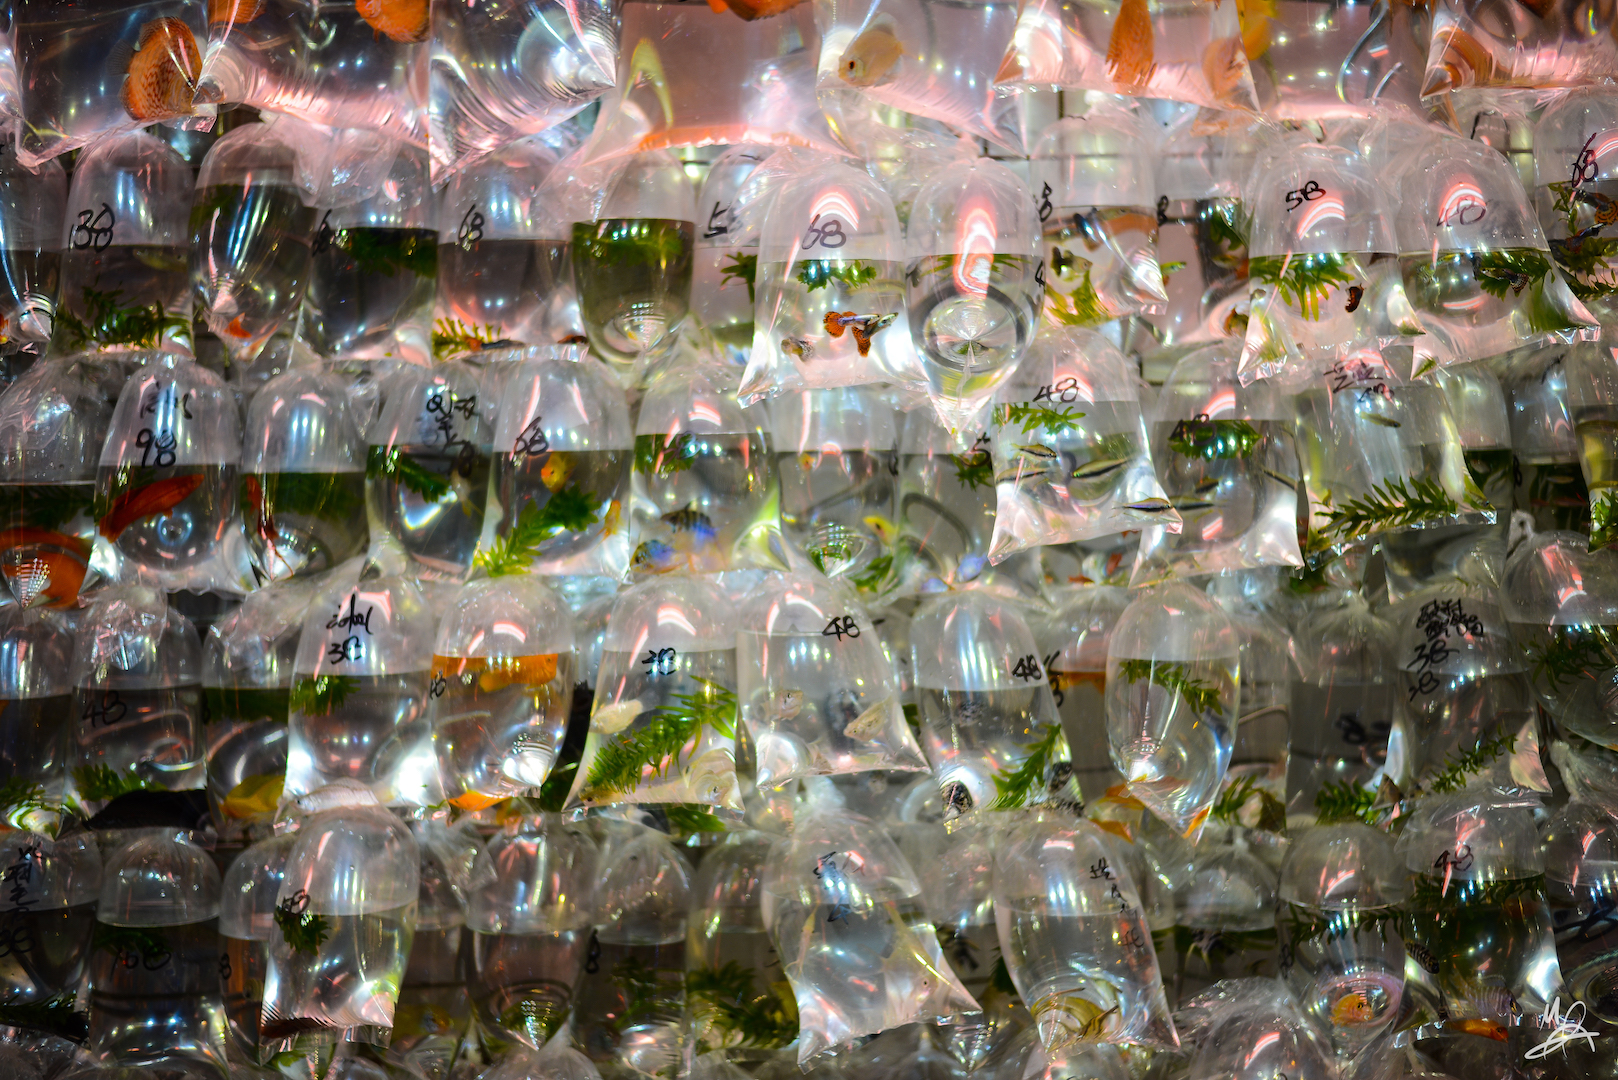 for sale: a wall of bagged fish